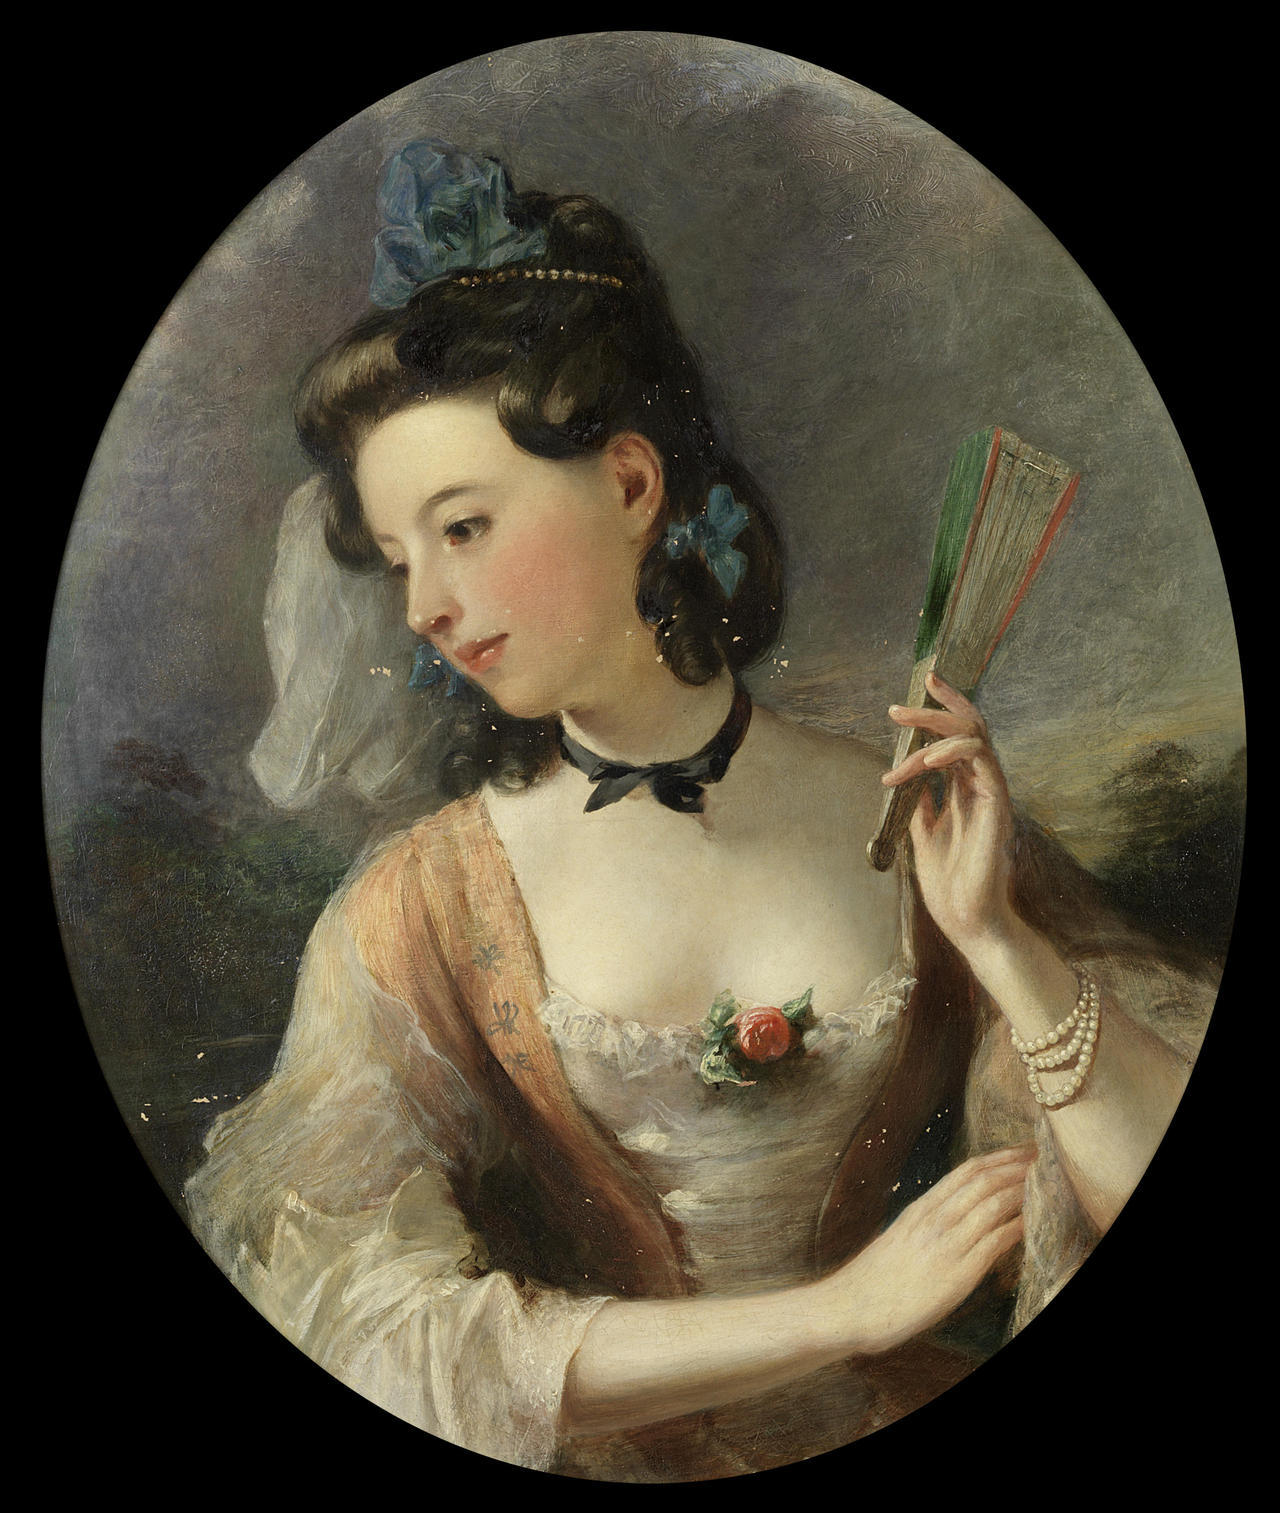 monsieurleprince:  Thomas Phillips (circle, 1770 - 1845) - Portrait of a lady